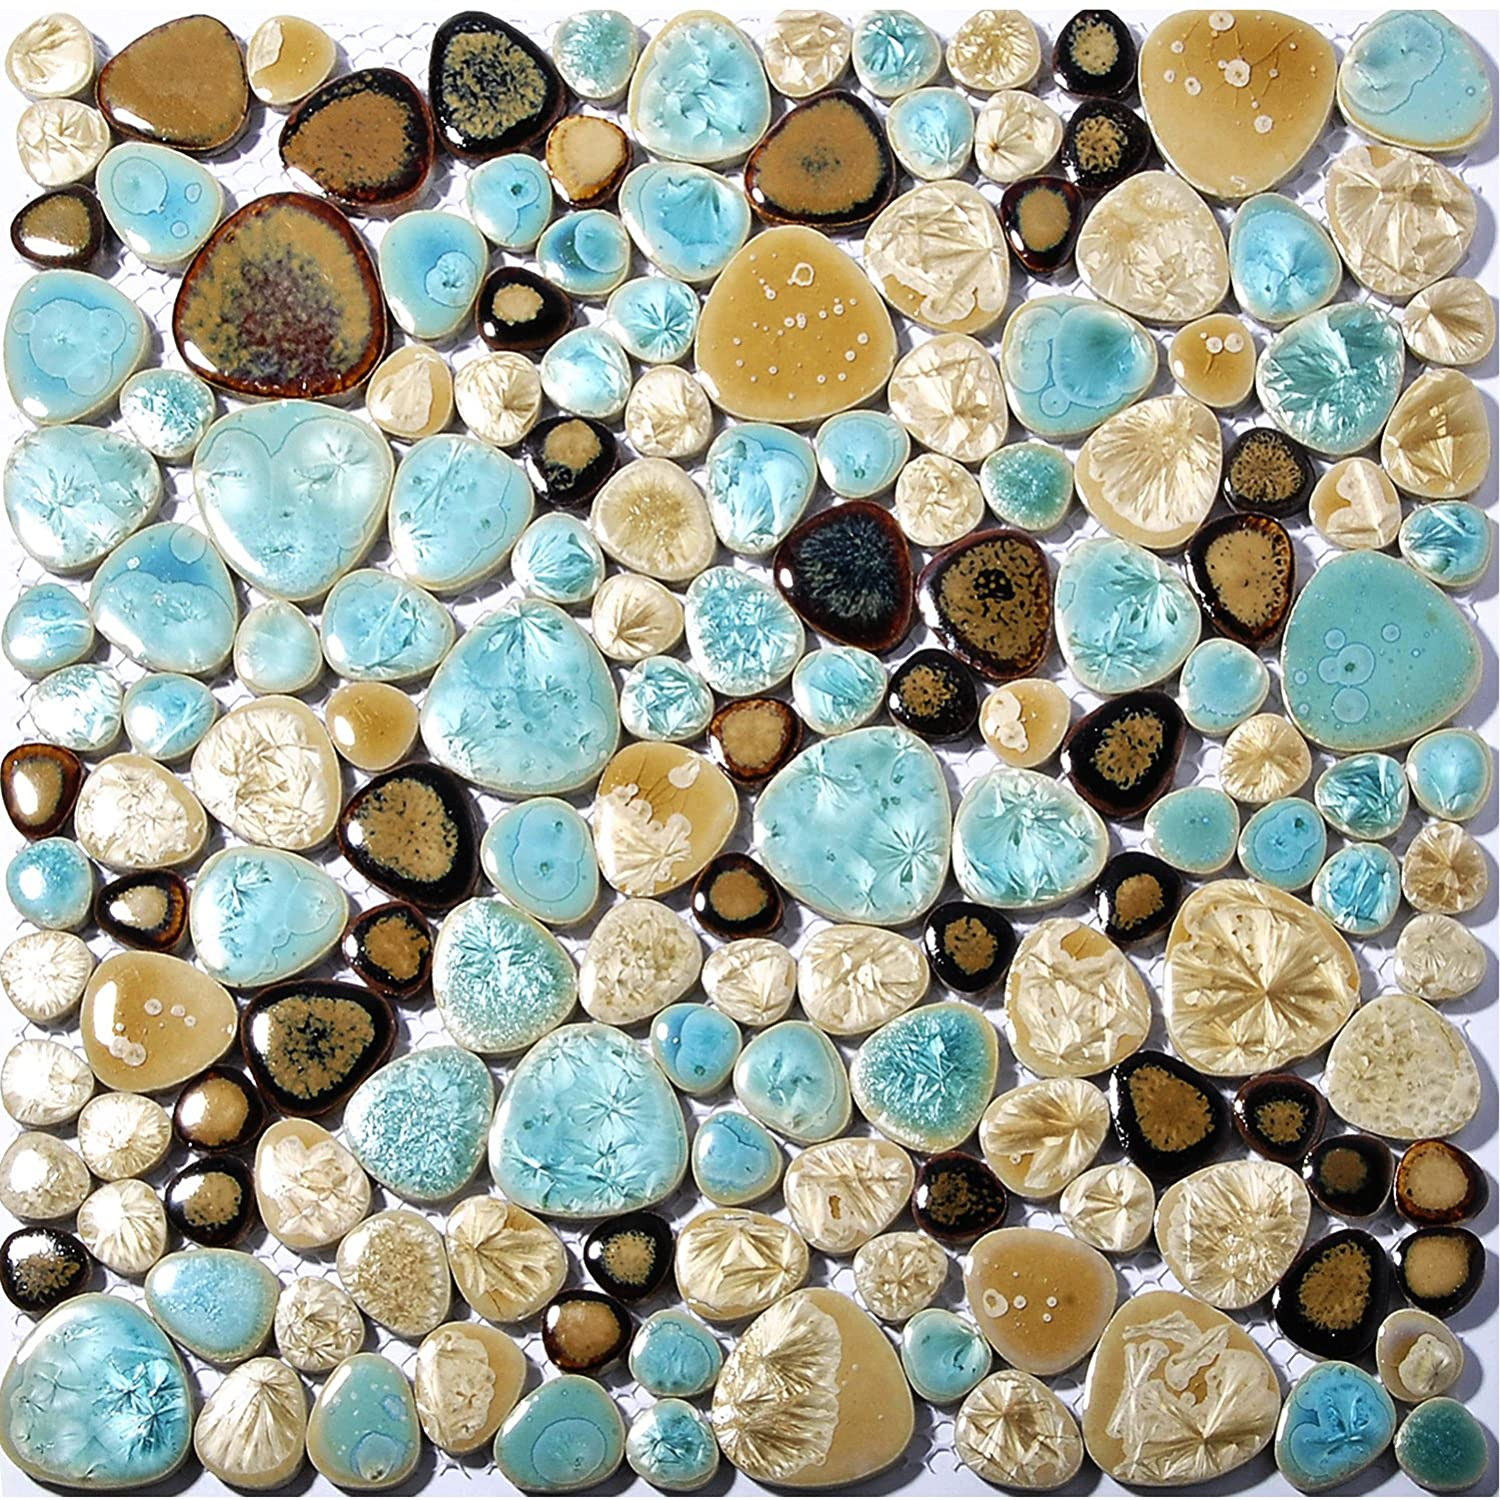 Ceramic floor tile amazon building supplies flooring pebble porcelain tile fambe turquoise green beige shower floor pool alley tiles mosaic tstgpt005 11 dailygadgetfo Images